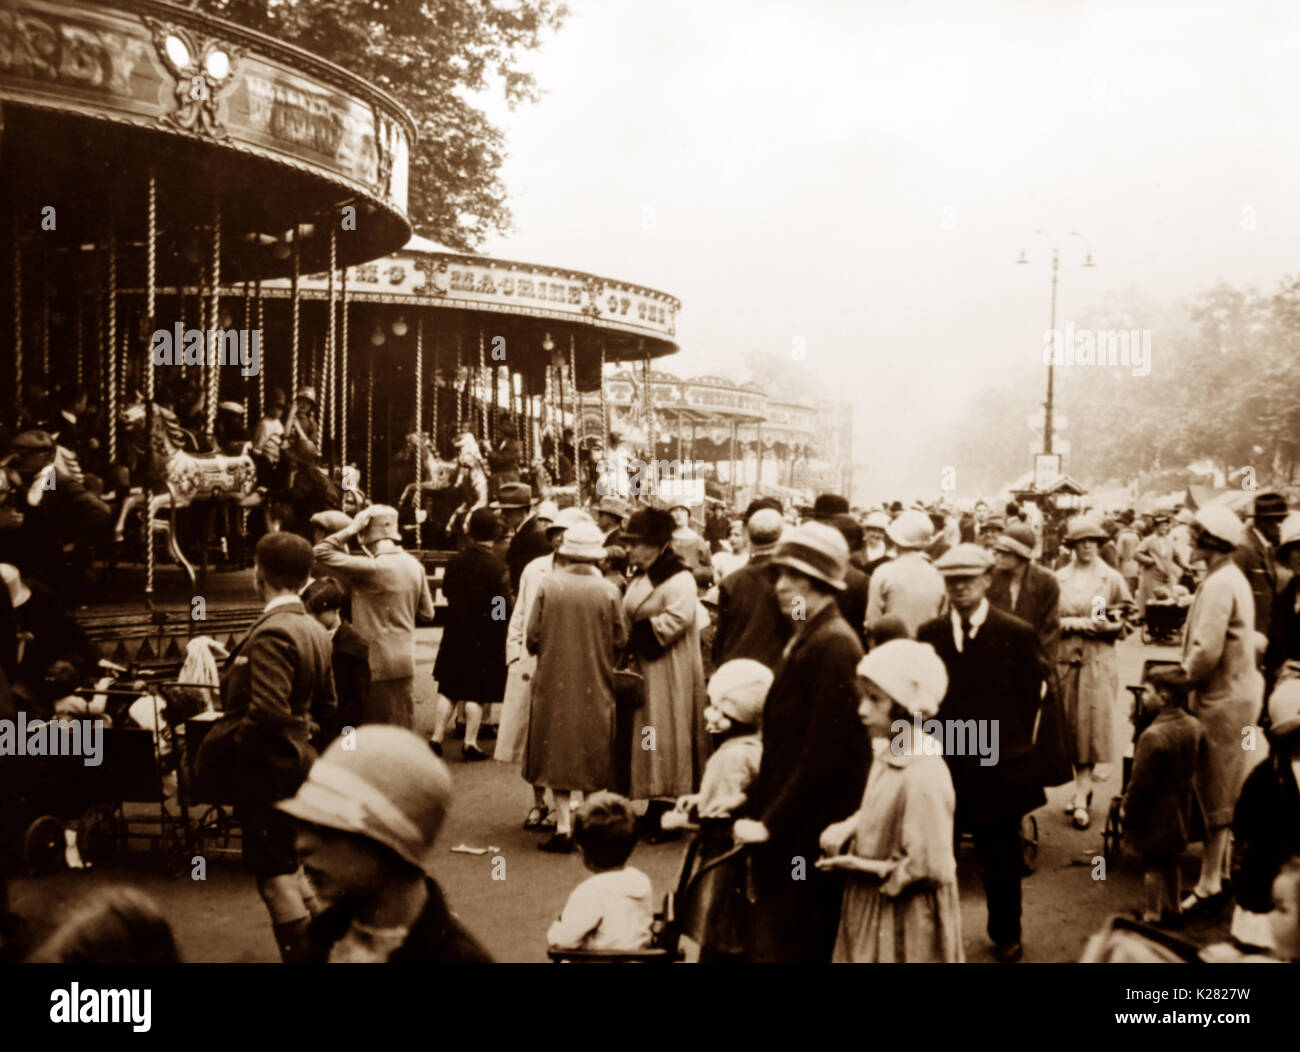 St. Giles' Fair, Oxford in 1924 - Stock Image